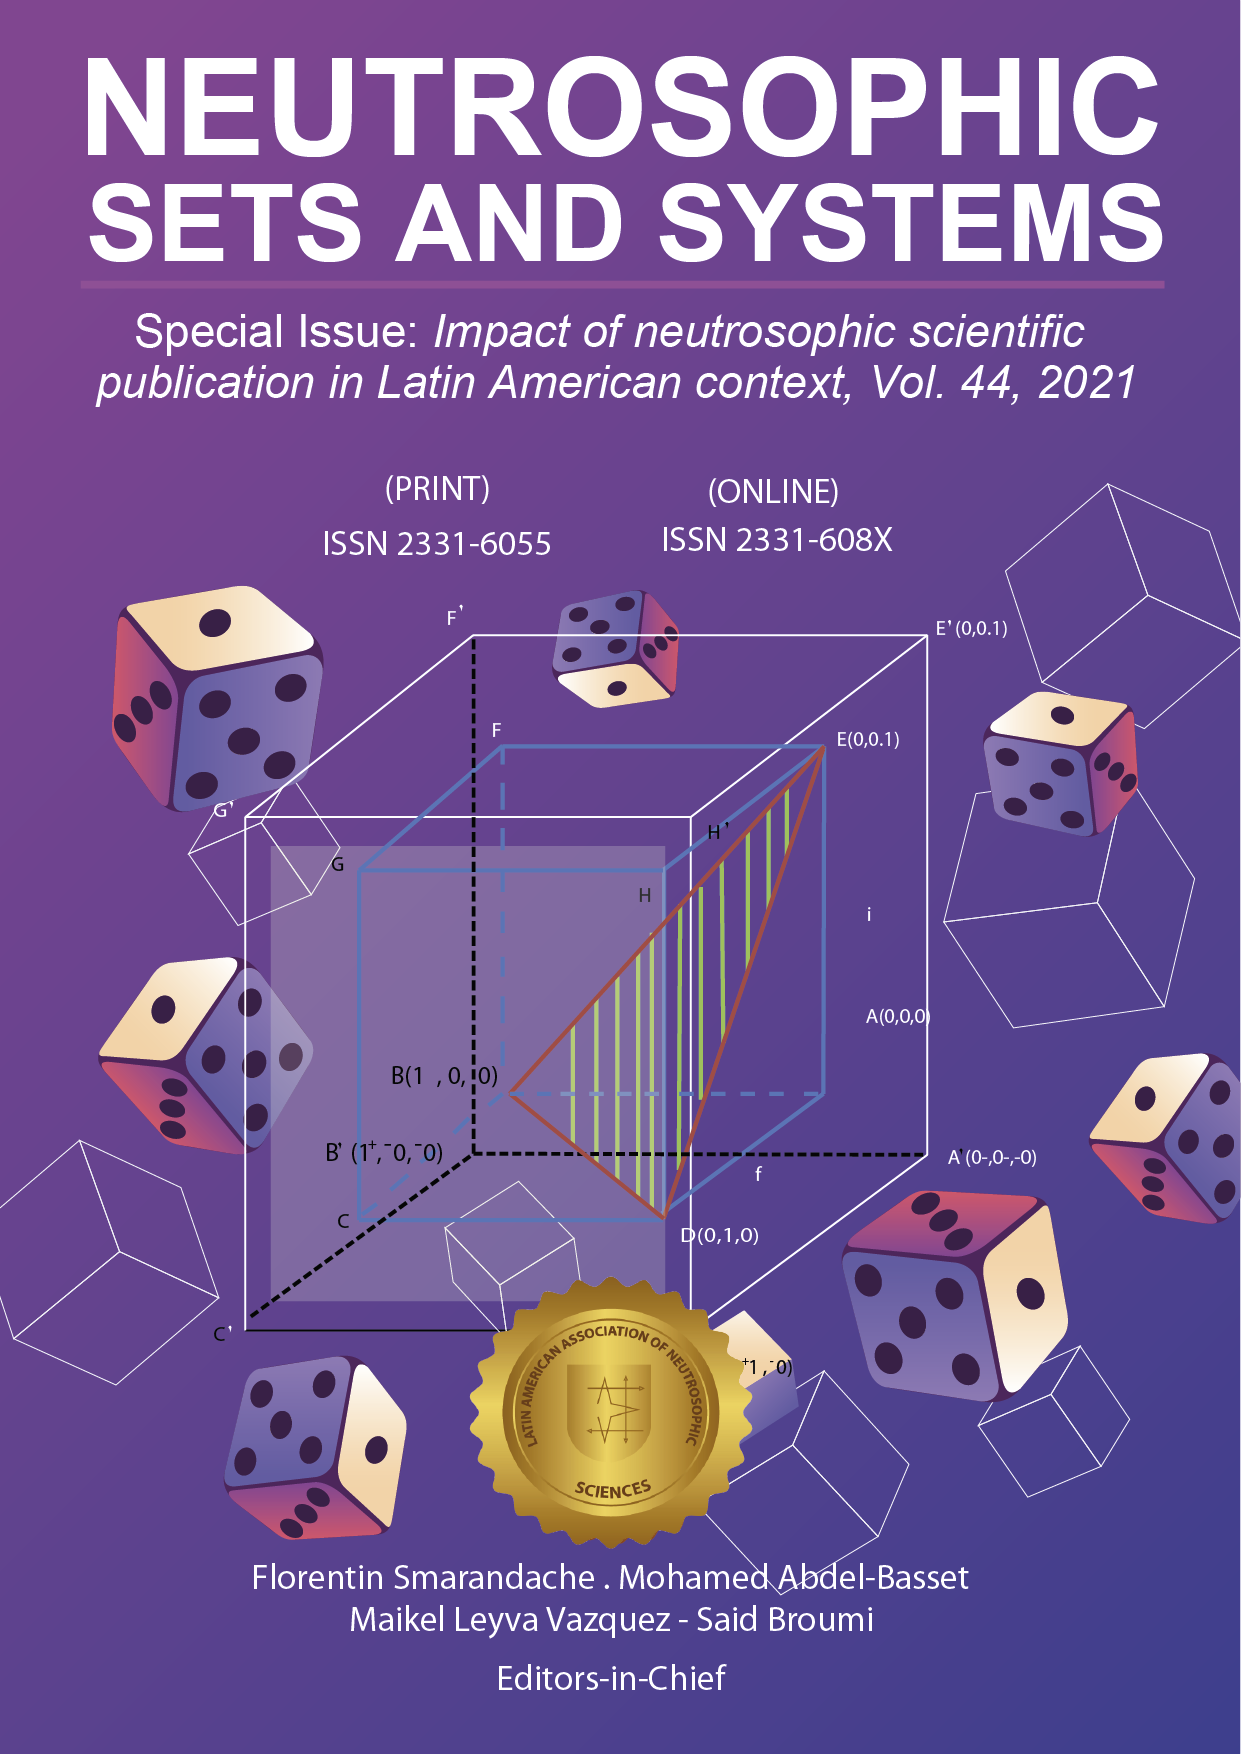 View Vol. 44 (2021): Neutrosophic Sets and Systems, {Special Issue:Impact of neutrosophic scientific publication in Latin American context}